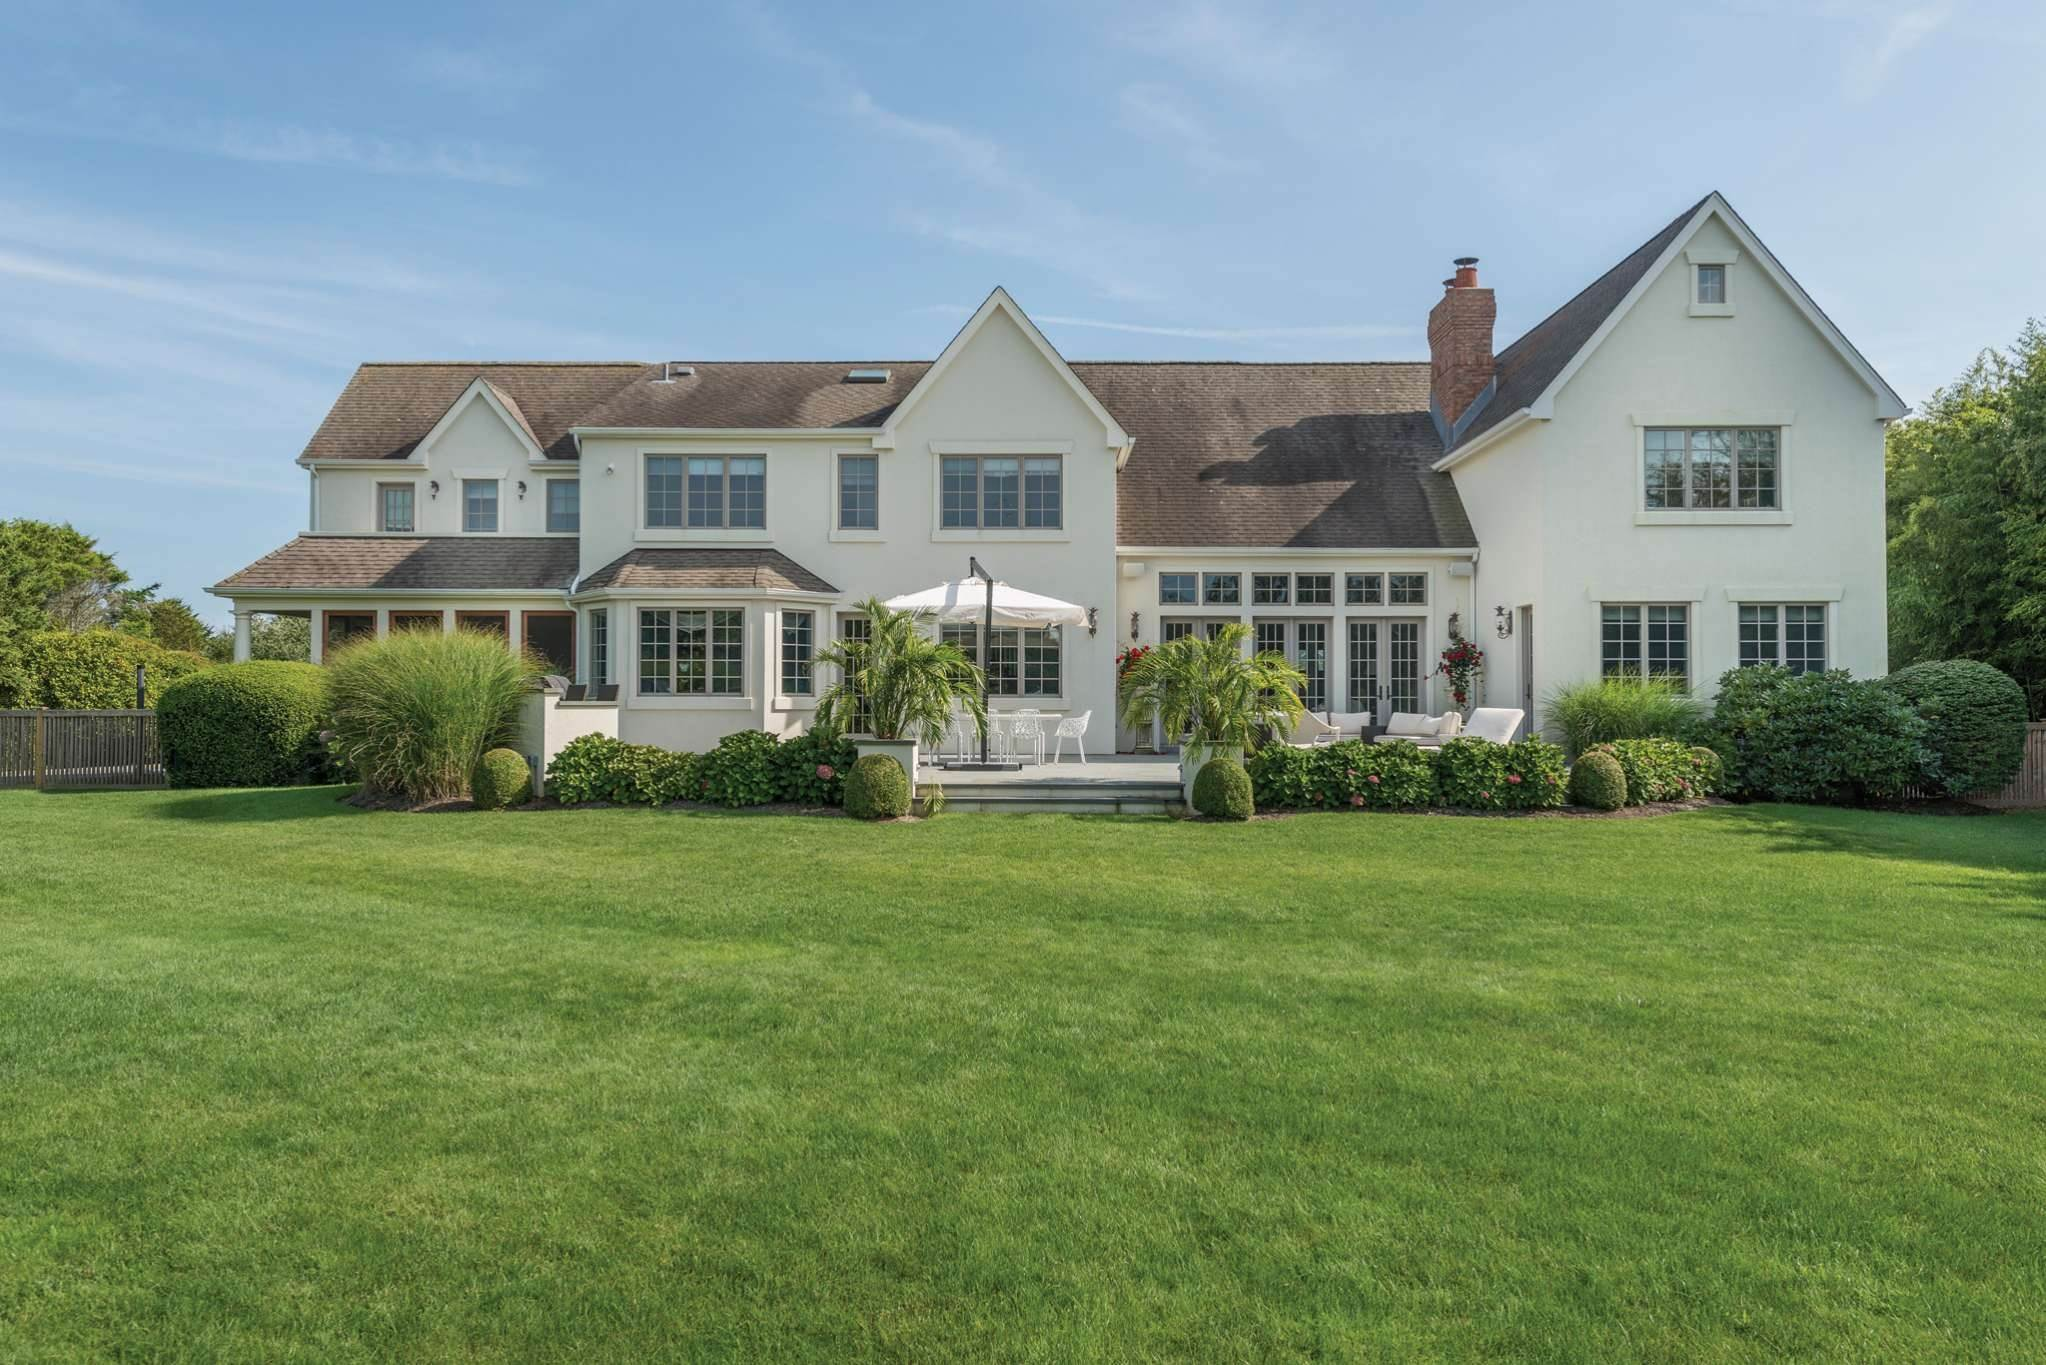 Single Family Homes at Bridgehampton Two Blocks From The Beach Bridgehampton, Southampton Town, NY 11932